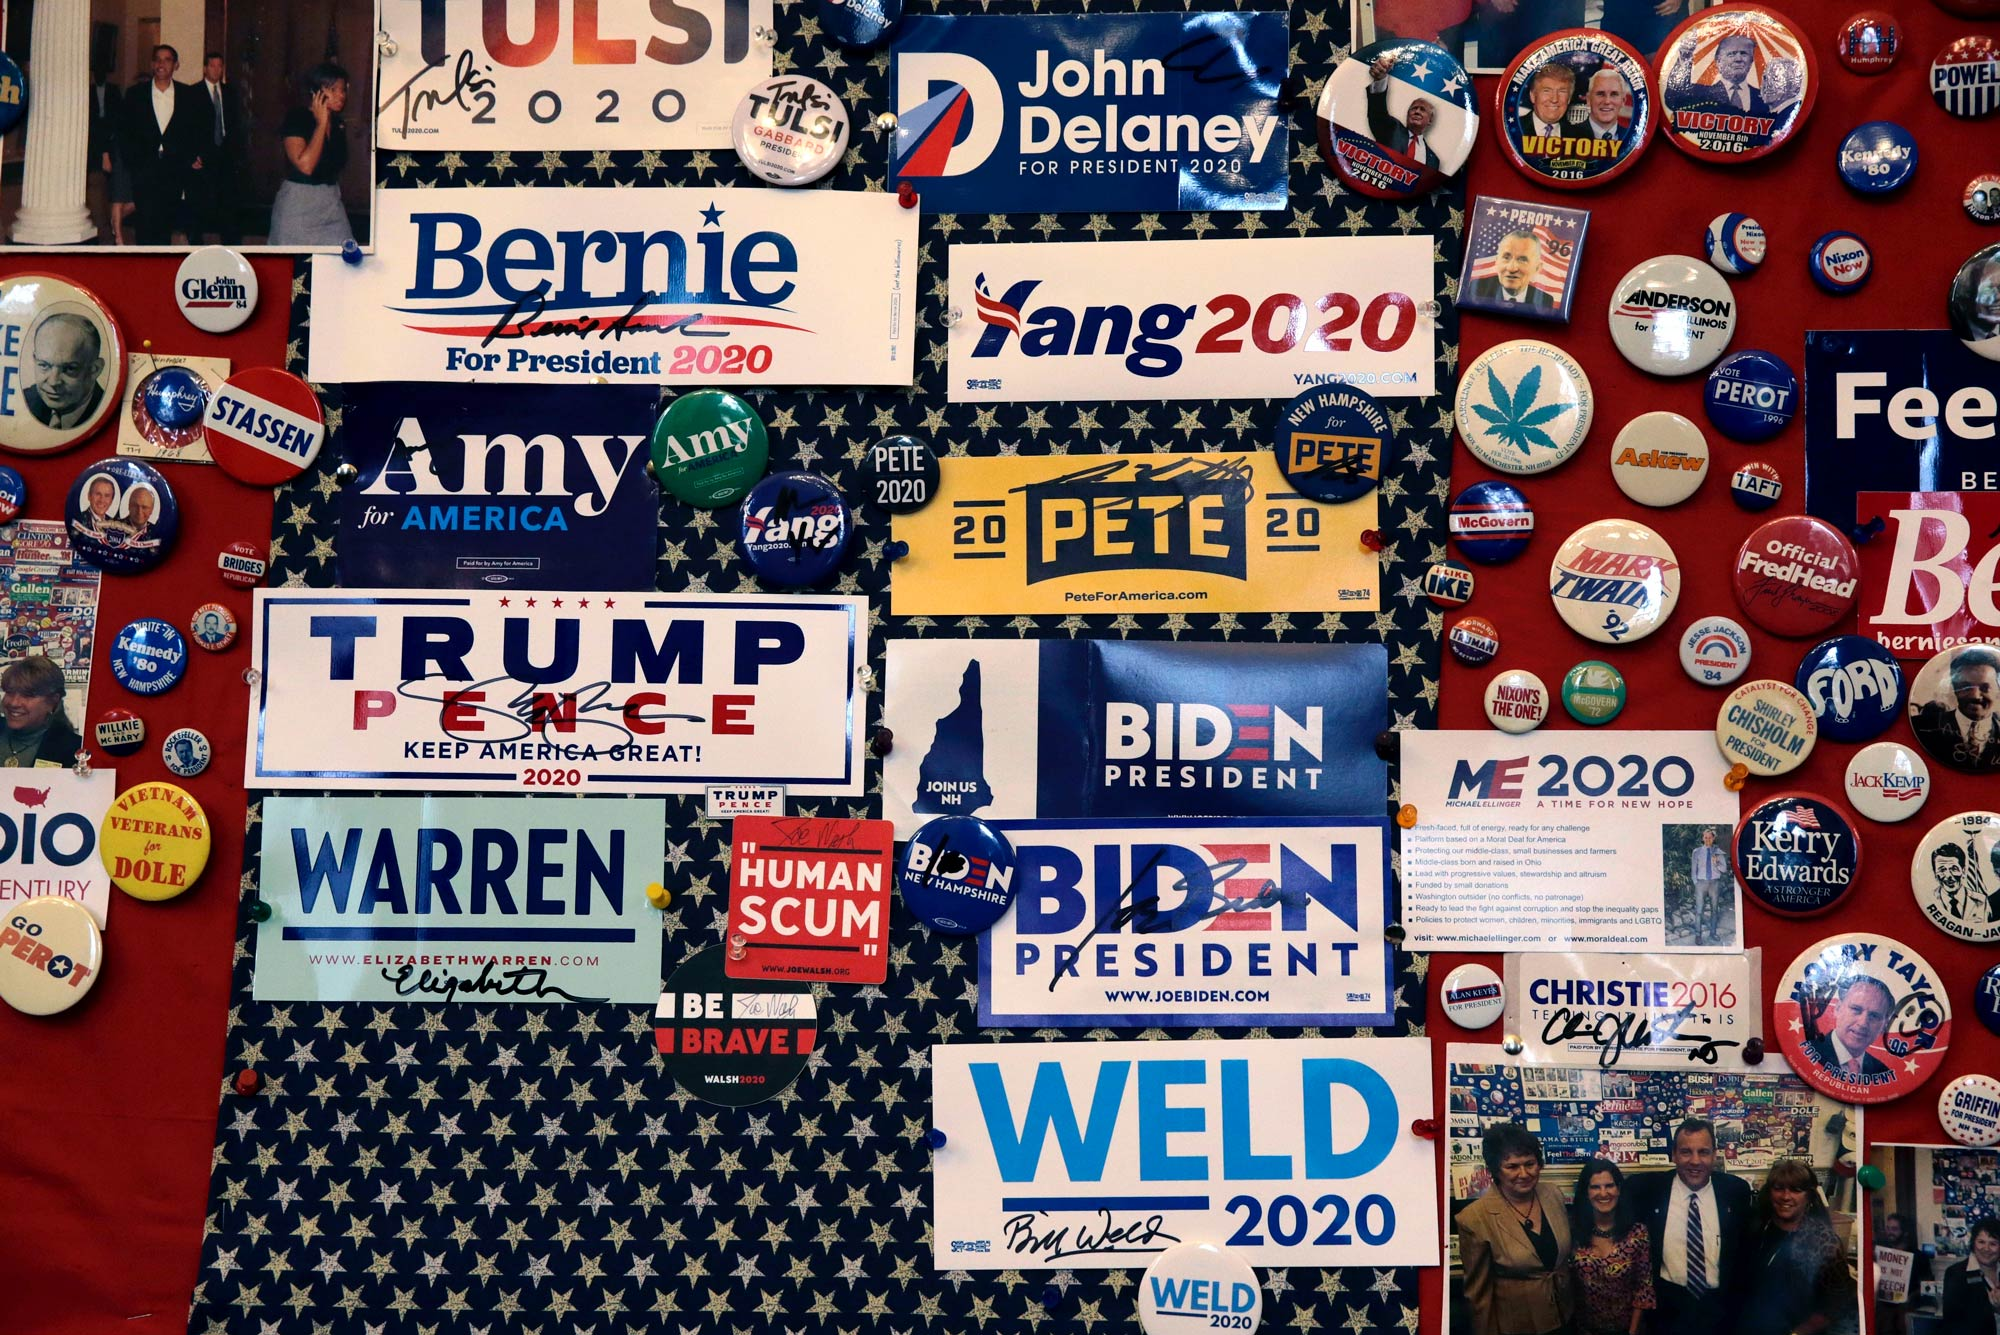 A collection of presidential candidate bumper stickers adorn a wall.